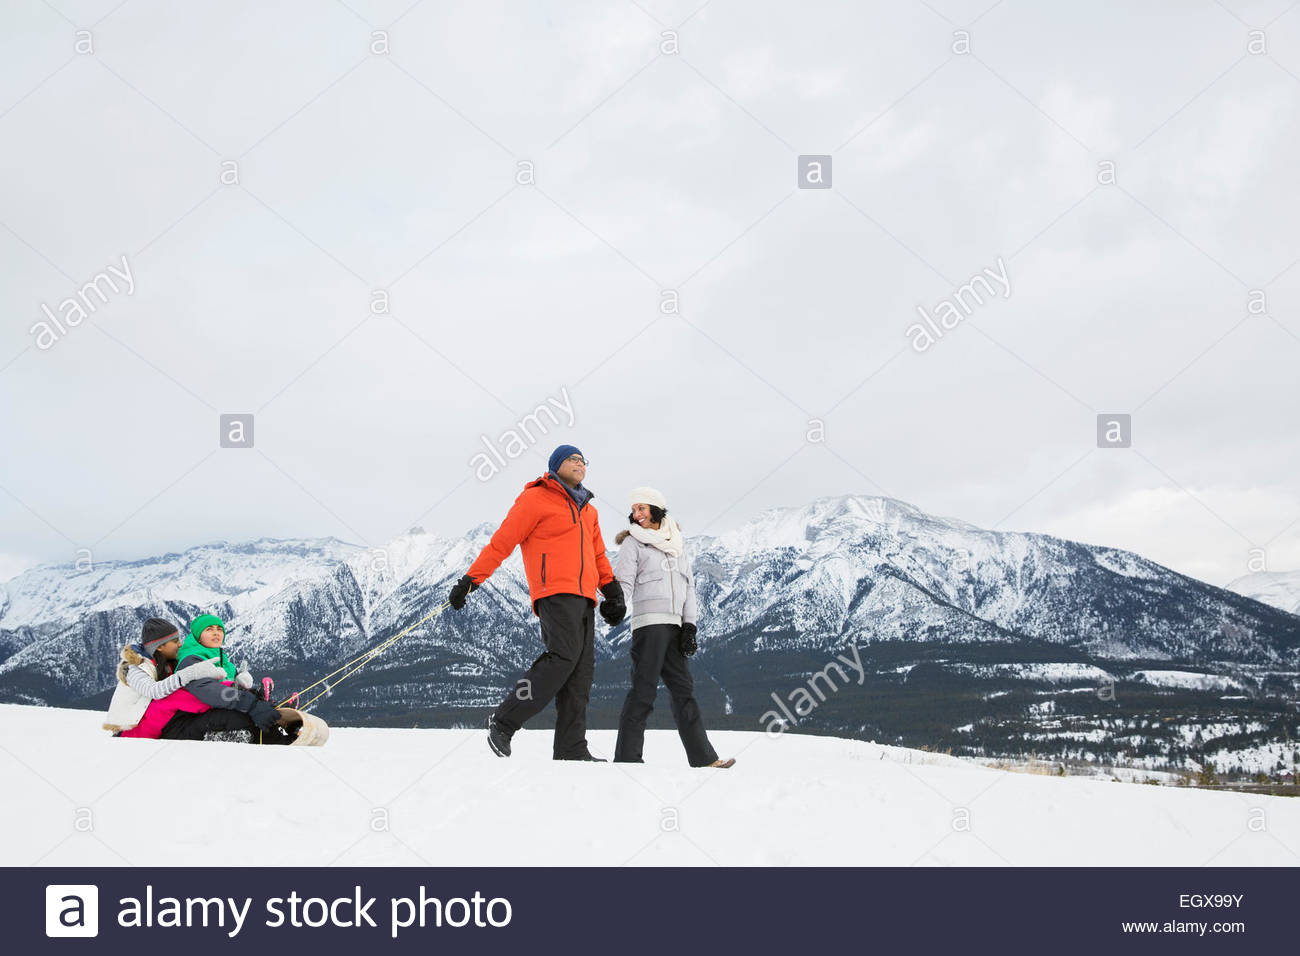 Parents pulling children on sled in snowy field - Stock Image